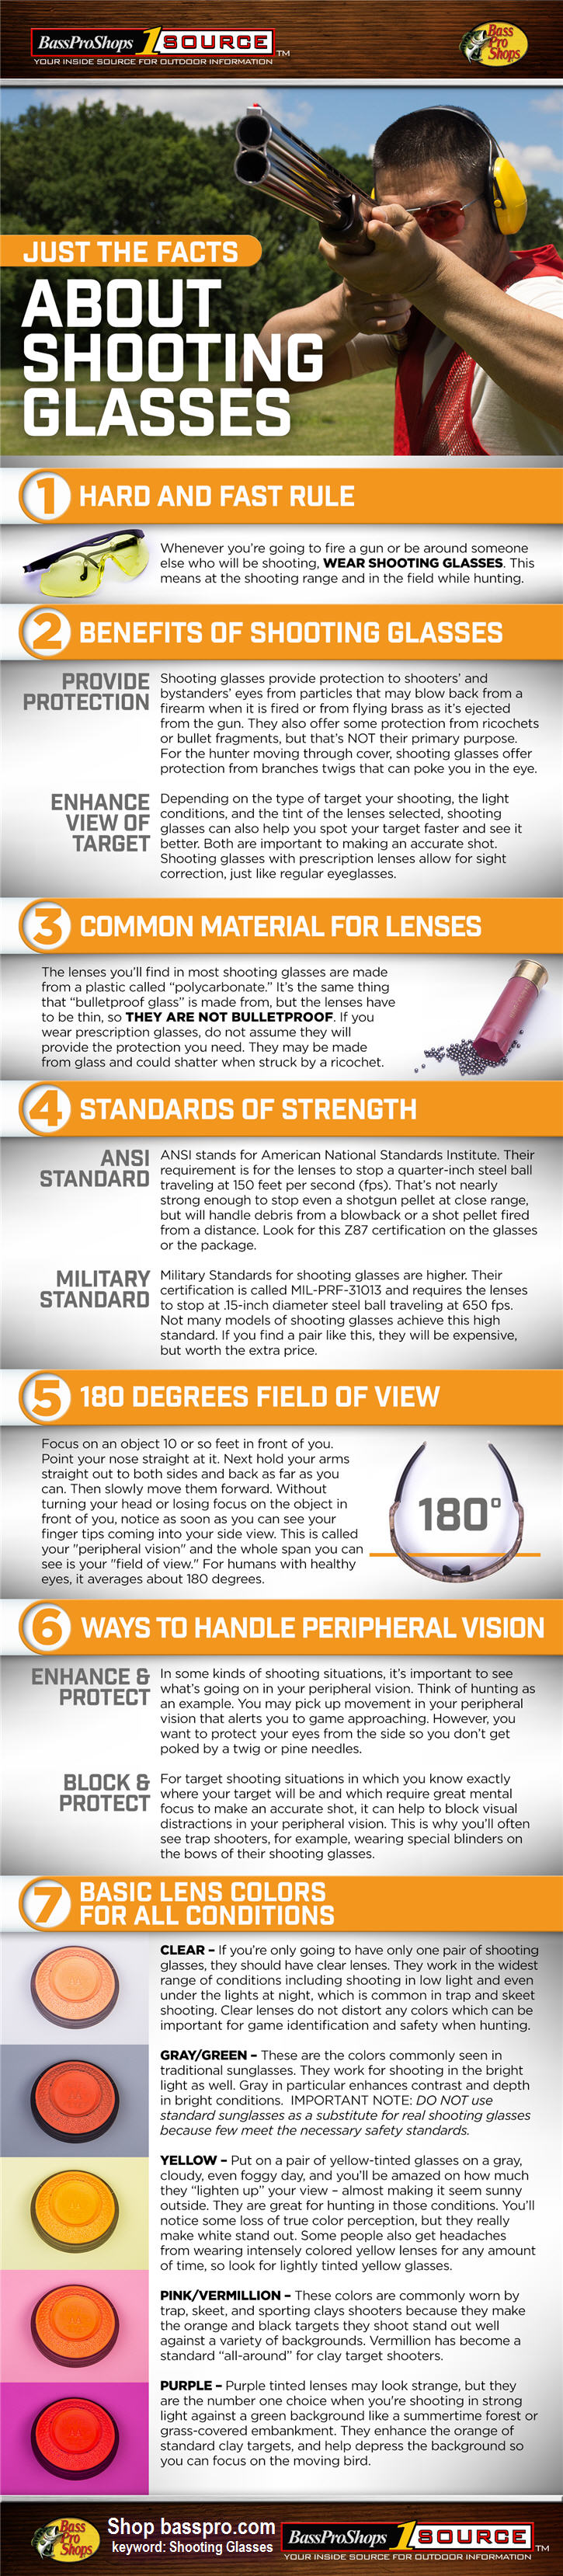 How to pick shooting glasses infographic diagram